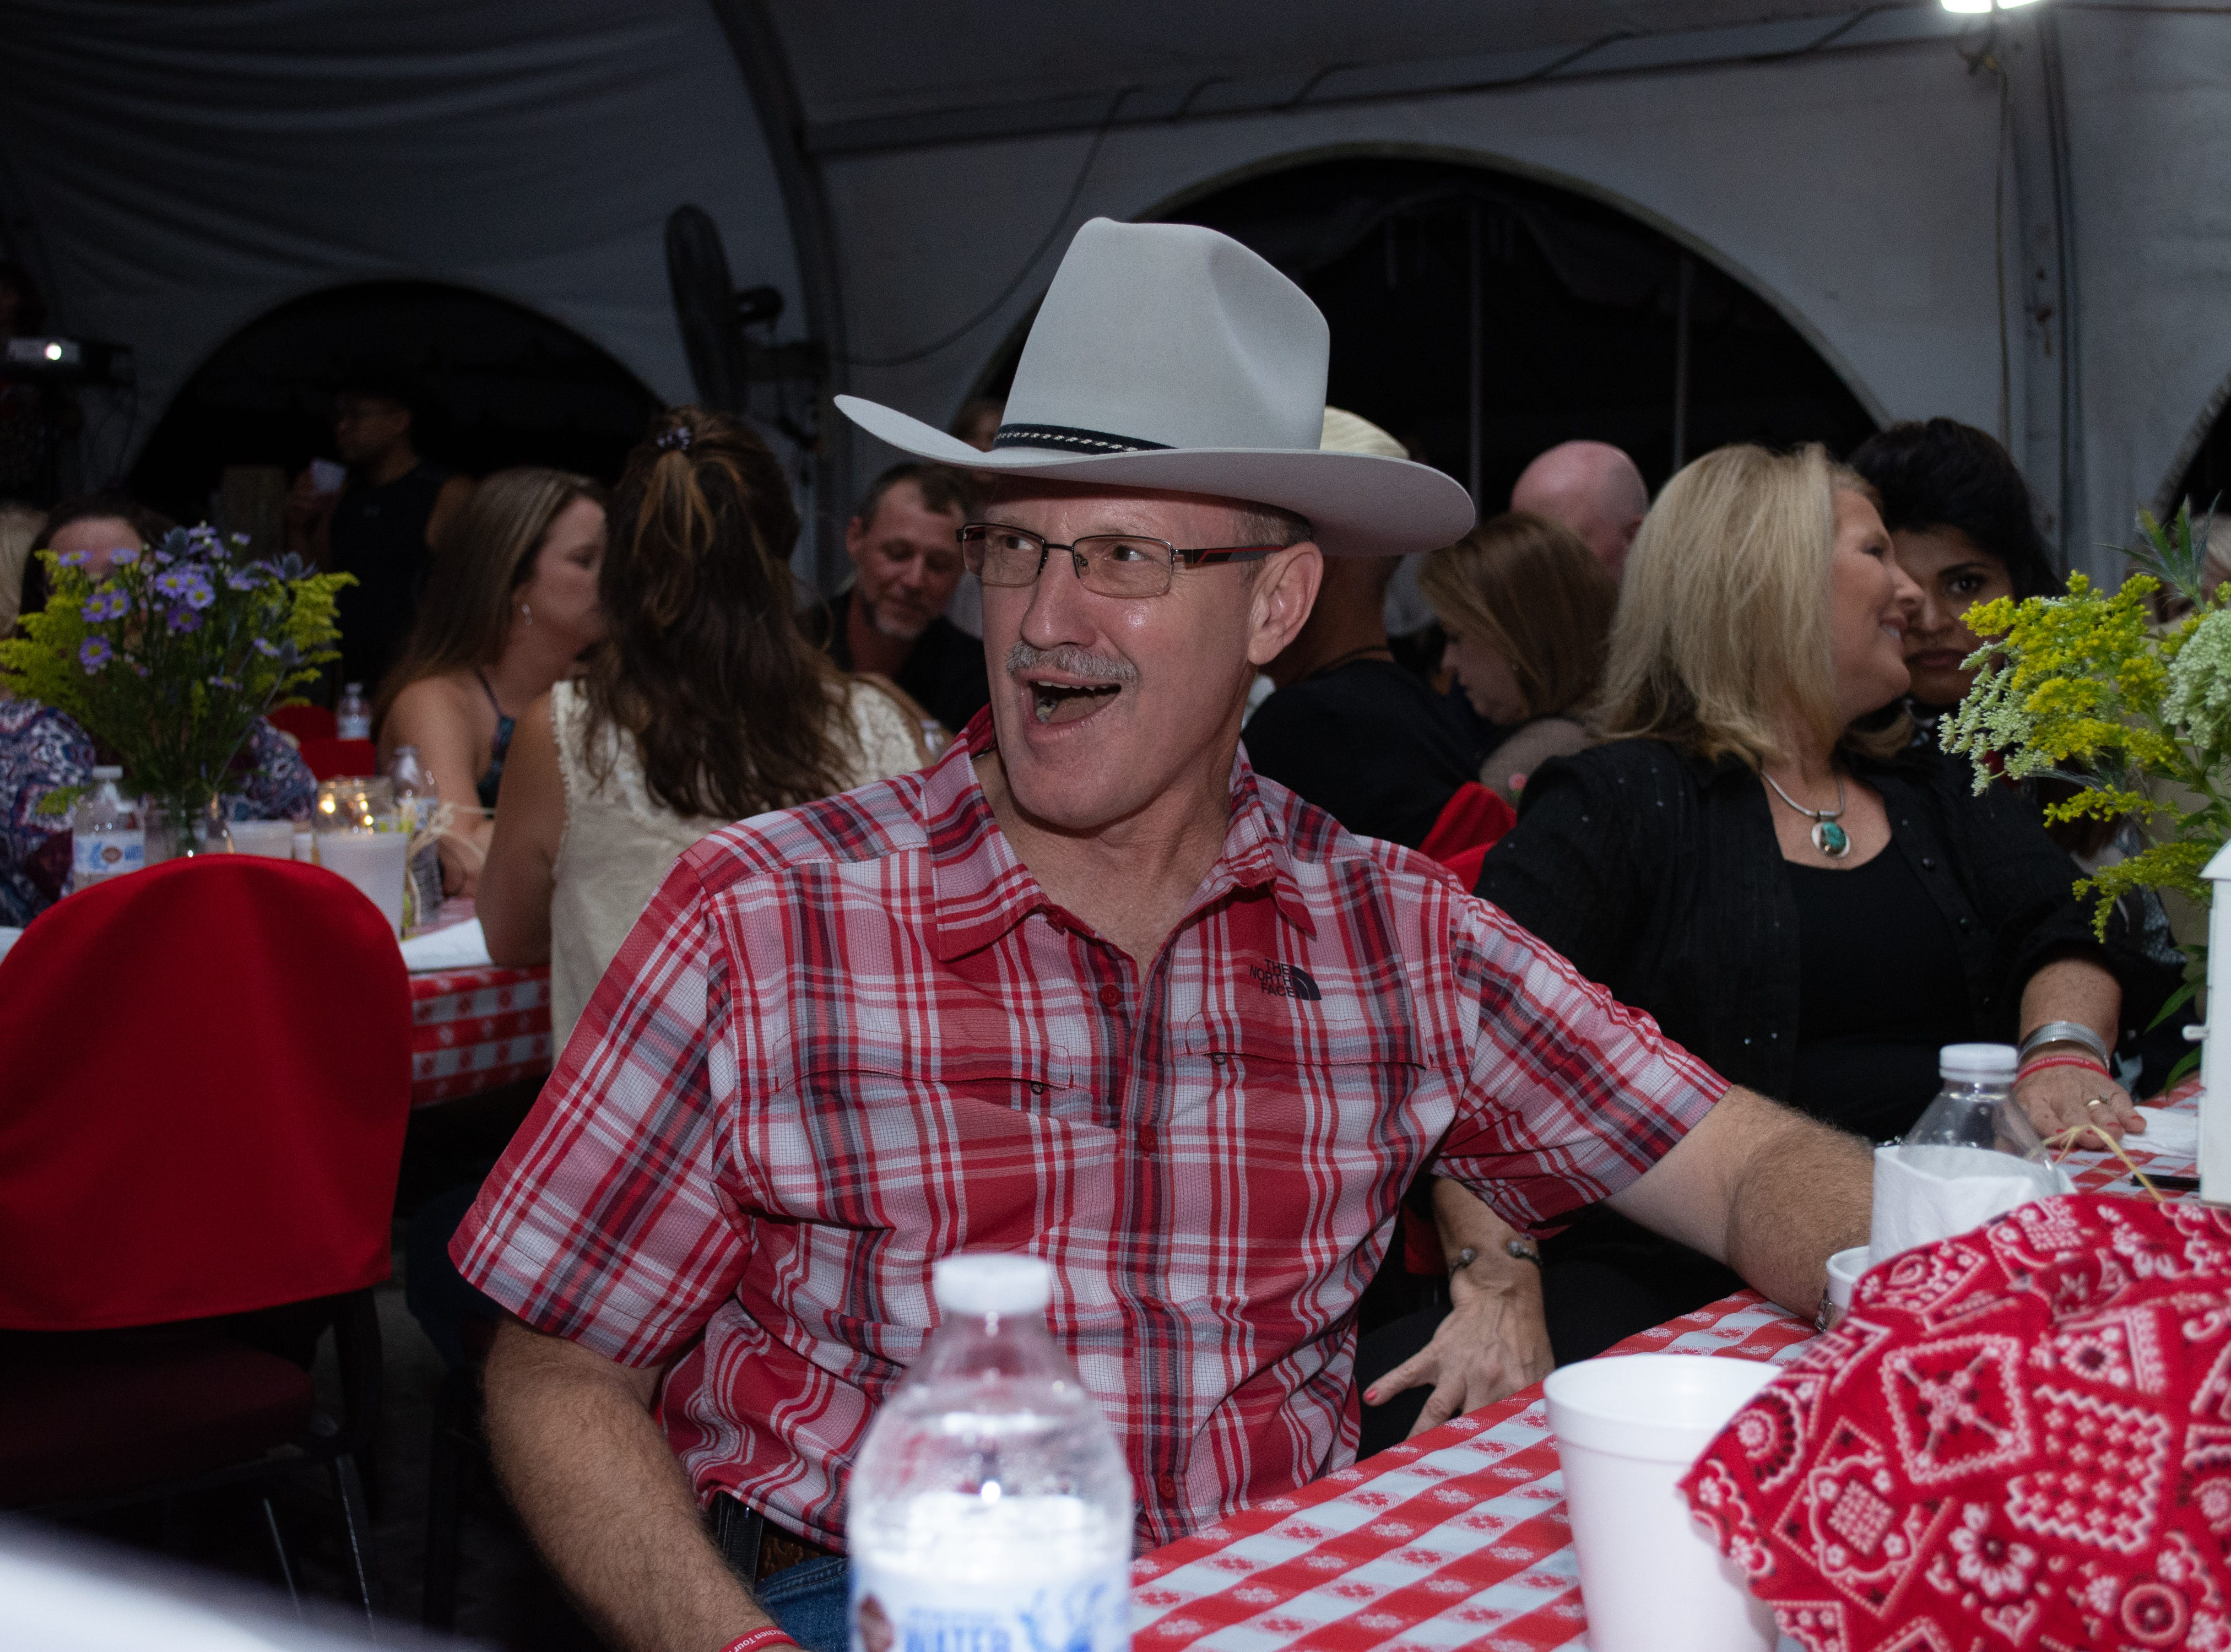 Photos from the second annual Boots and Bandits fundraiser at Shuler's in Titusville raising money for the Woman's Center. Arron Lampkin/For FLORIDA TODAY